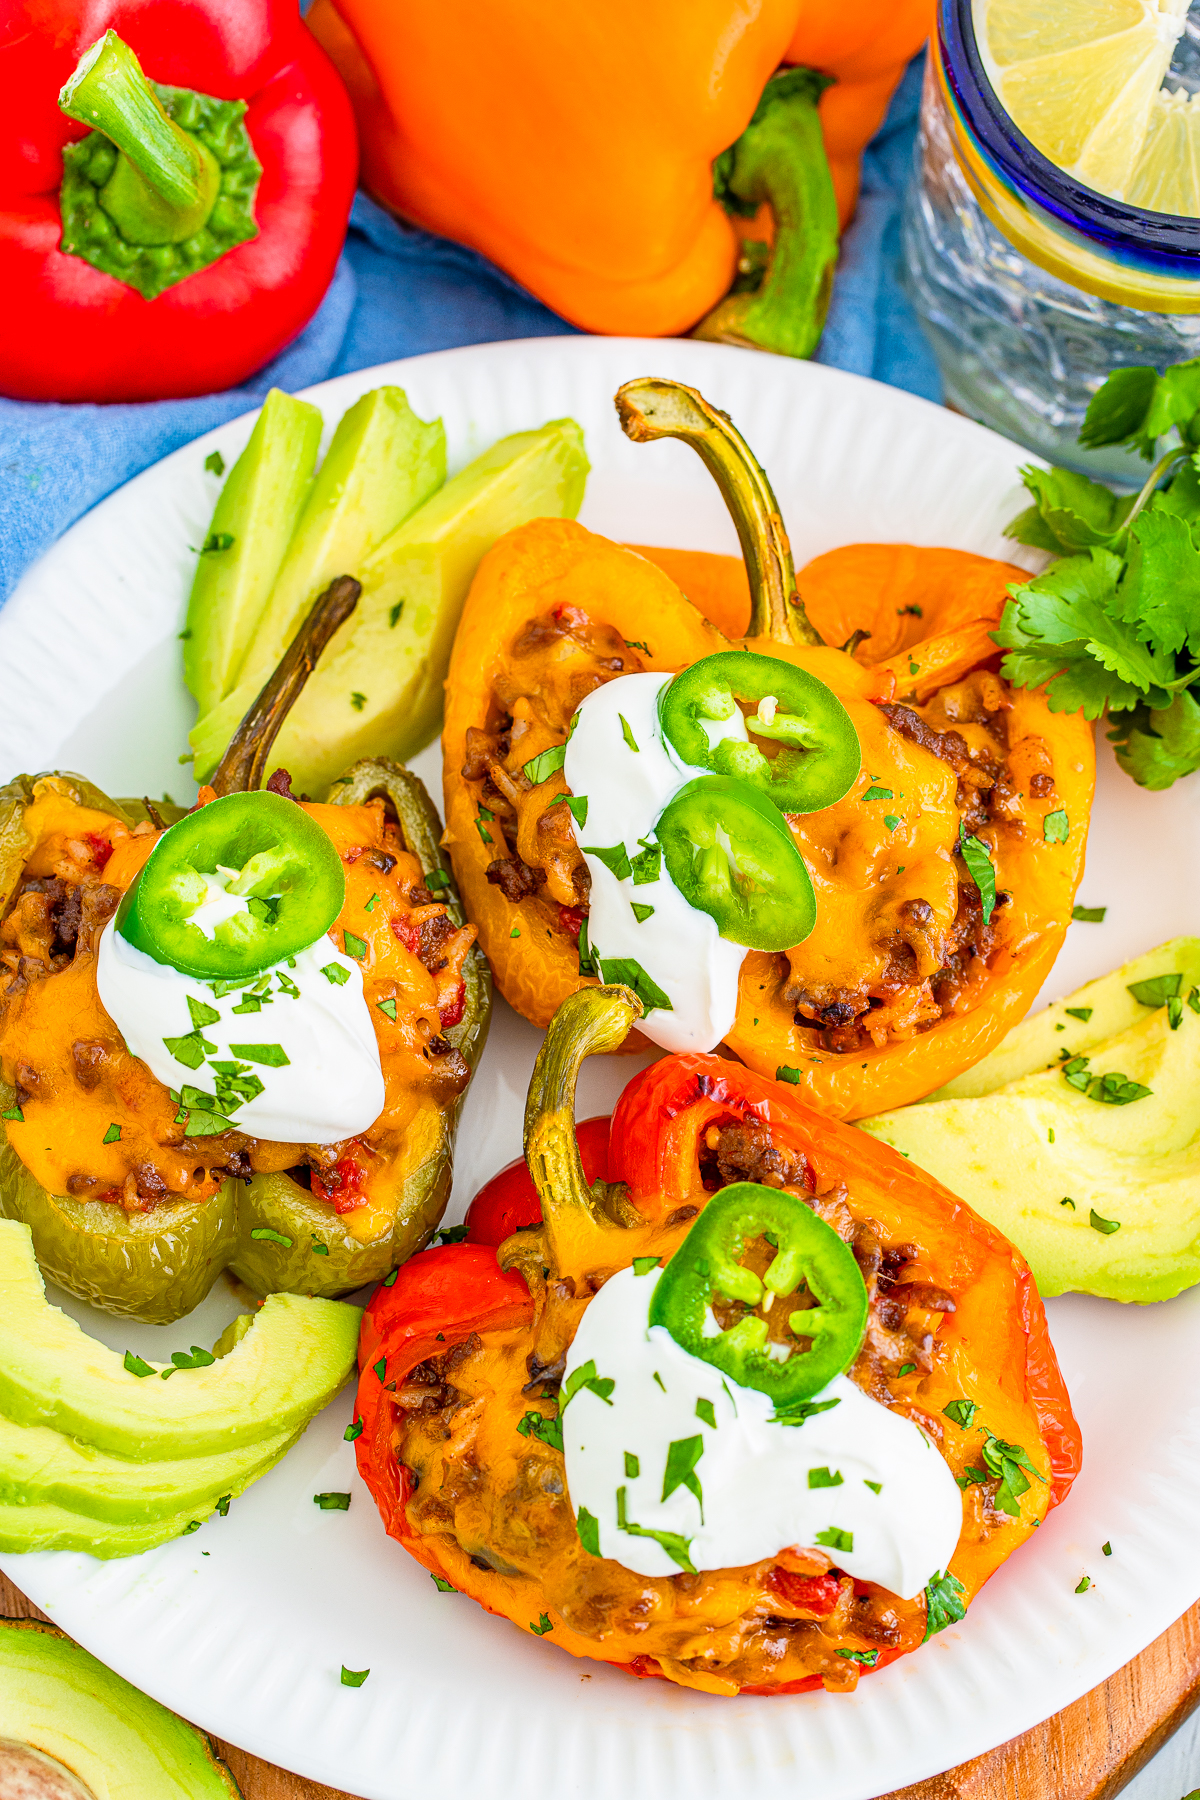 Overhead plated shot of Mexican Stuffed Peppers